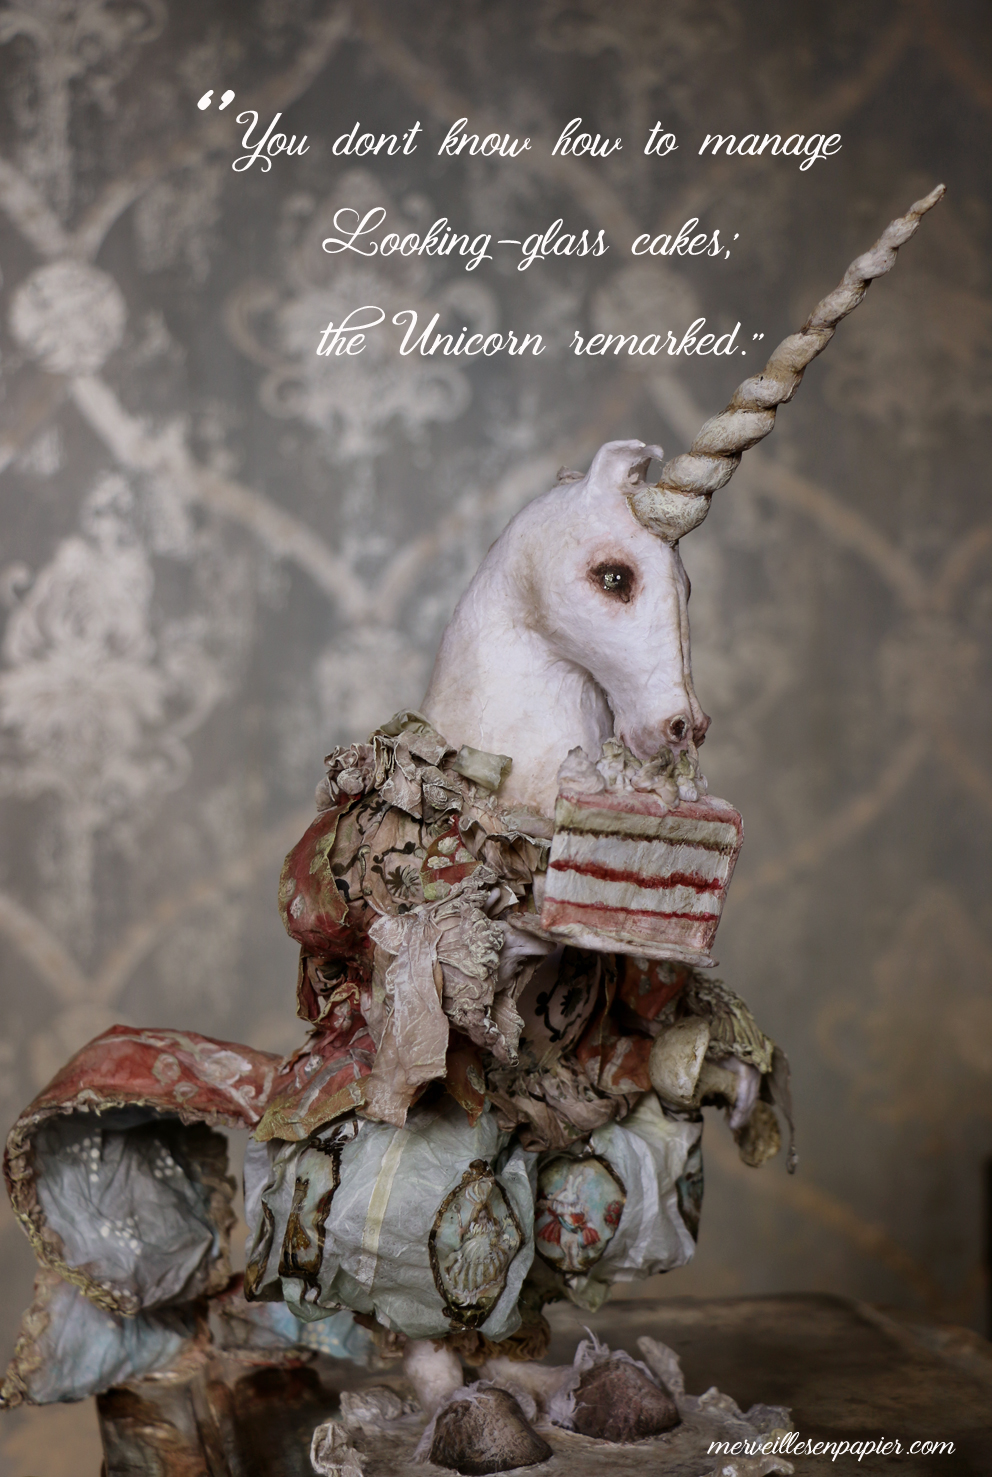 Unicorn's cake - Through The Looking Glass